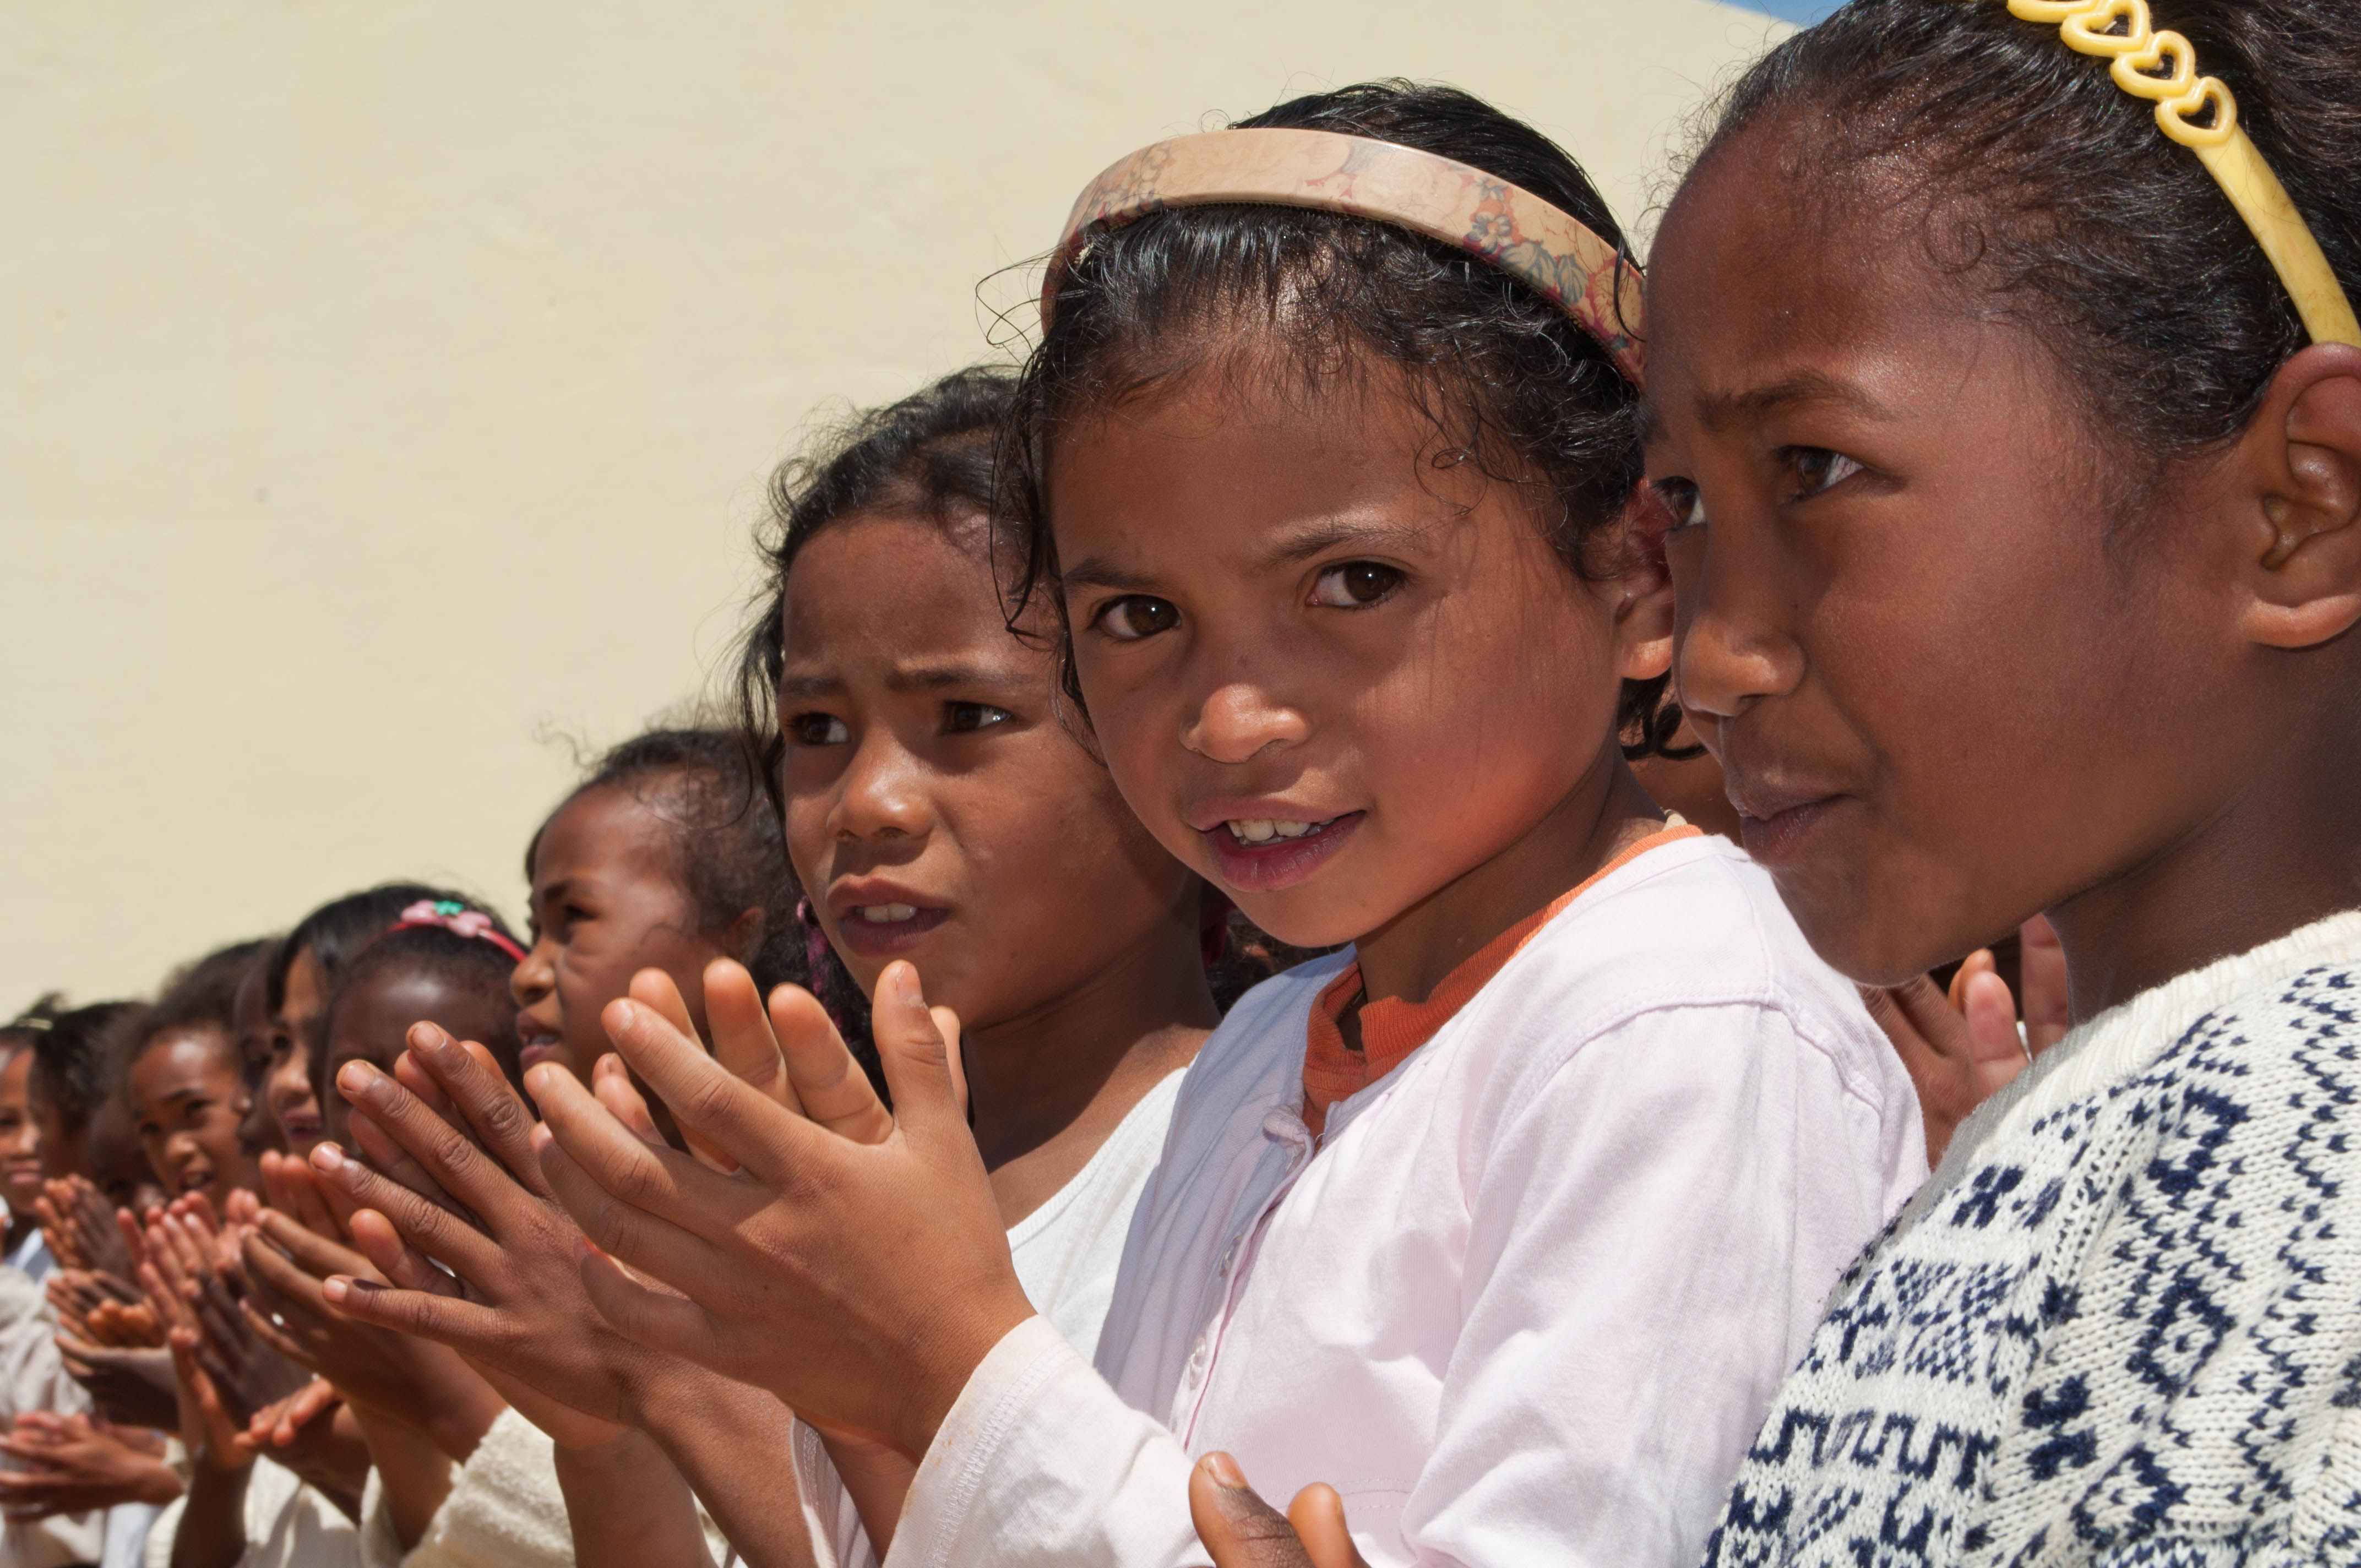 Merina girls of highland Madagascar. Credit: https://www.flickr.com/photos/saveoursmile/5614134410/in/photostream